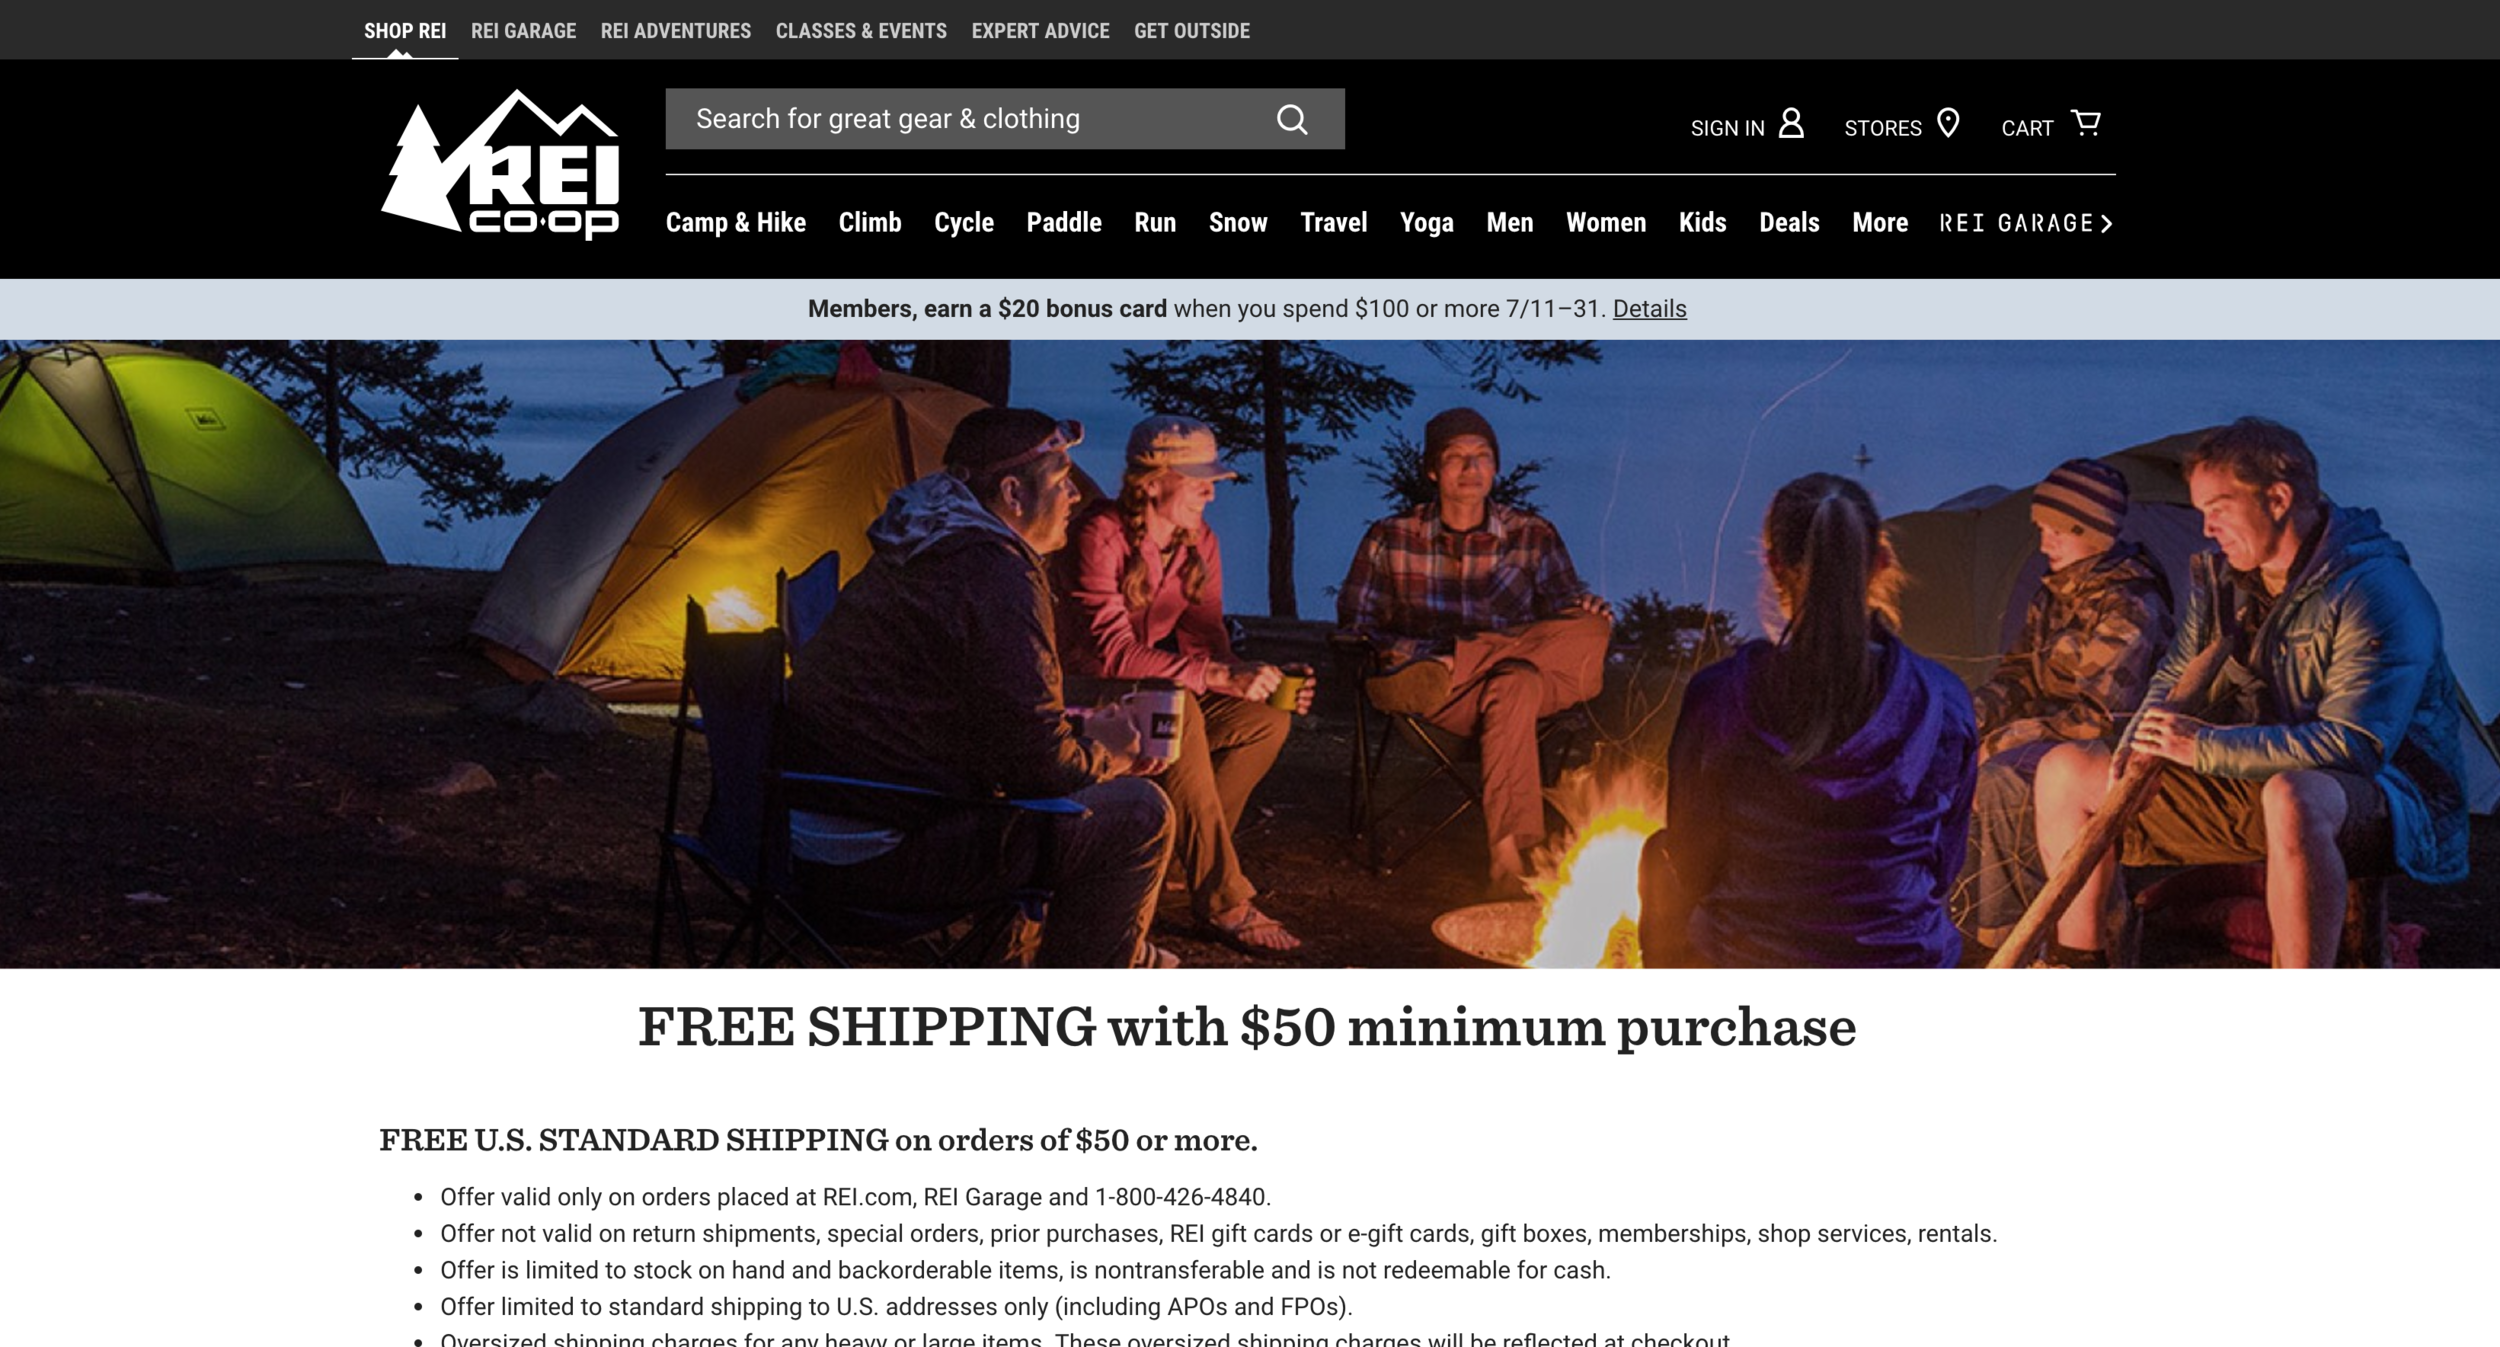 REI  offers free shipping on orders over $50.